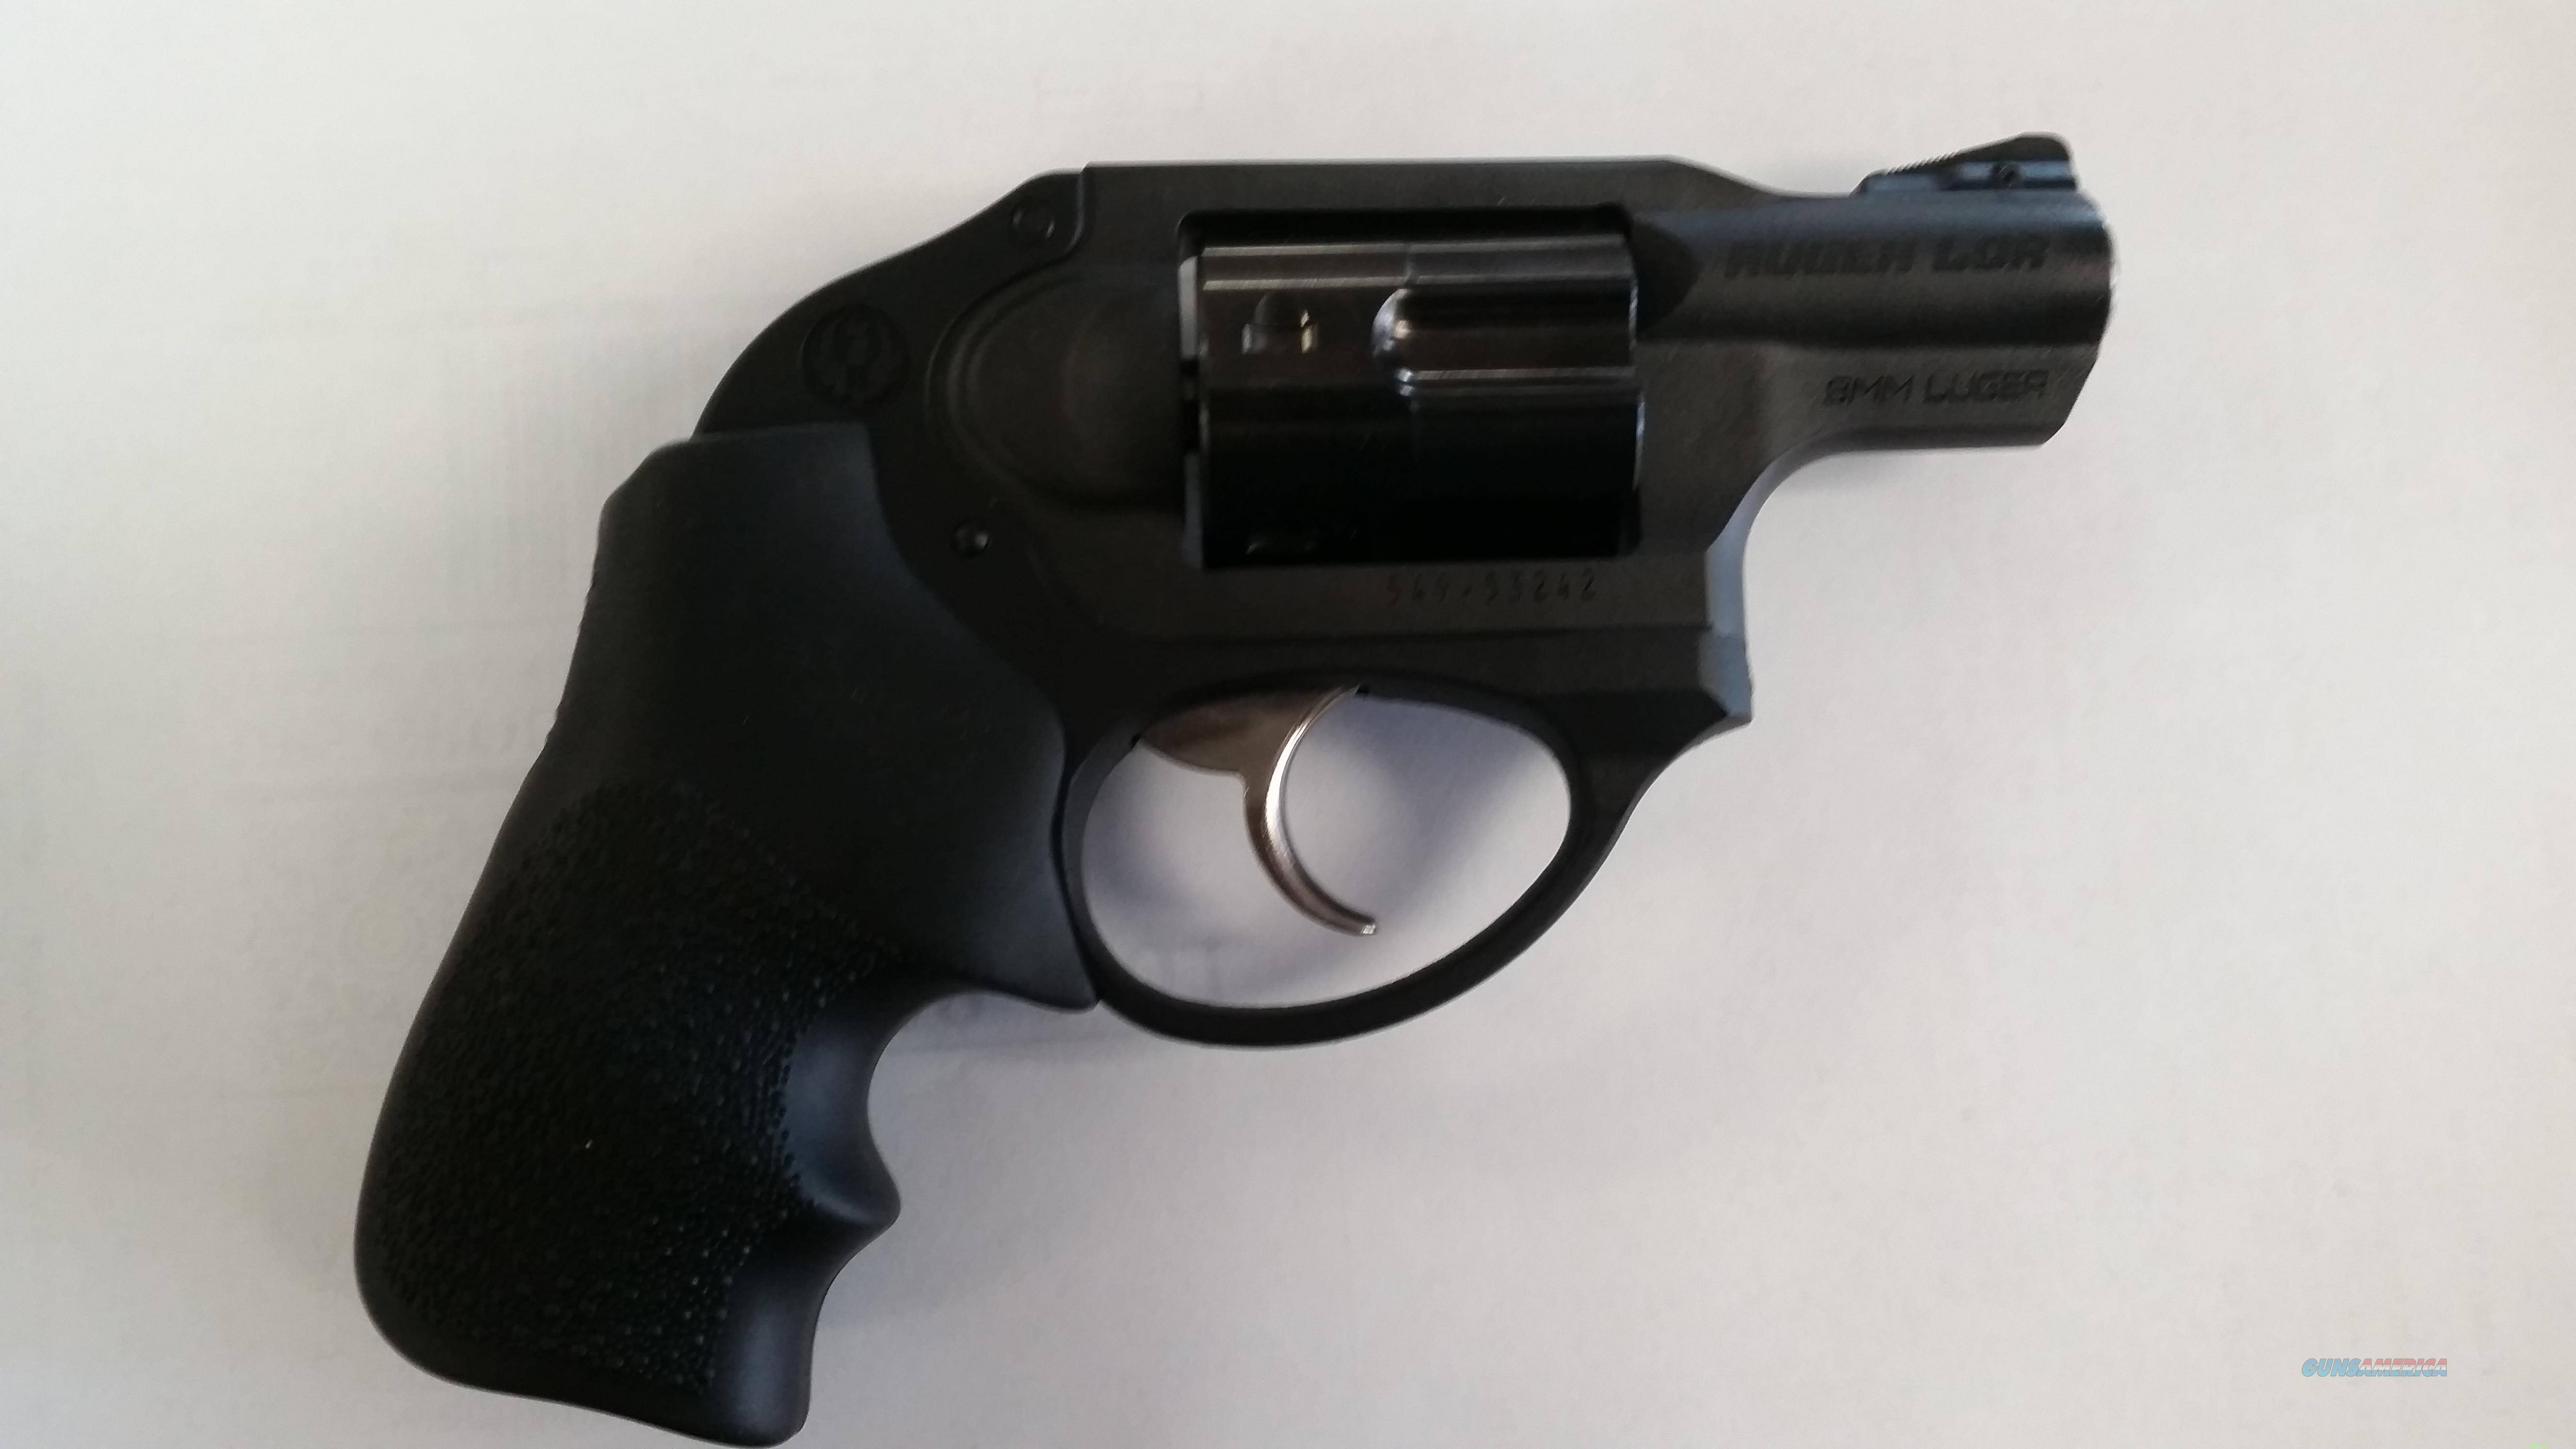 Pre-Owned Ruger LCR 9mm %rd Revolver  Guns > Pistols > Ruger Double Action Revolver > LCR